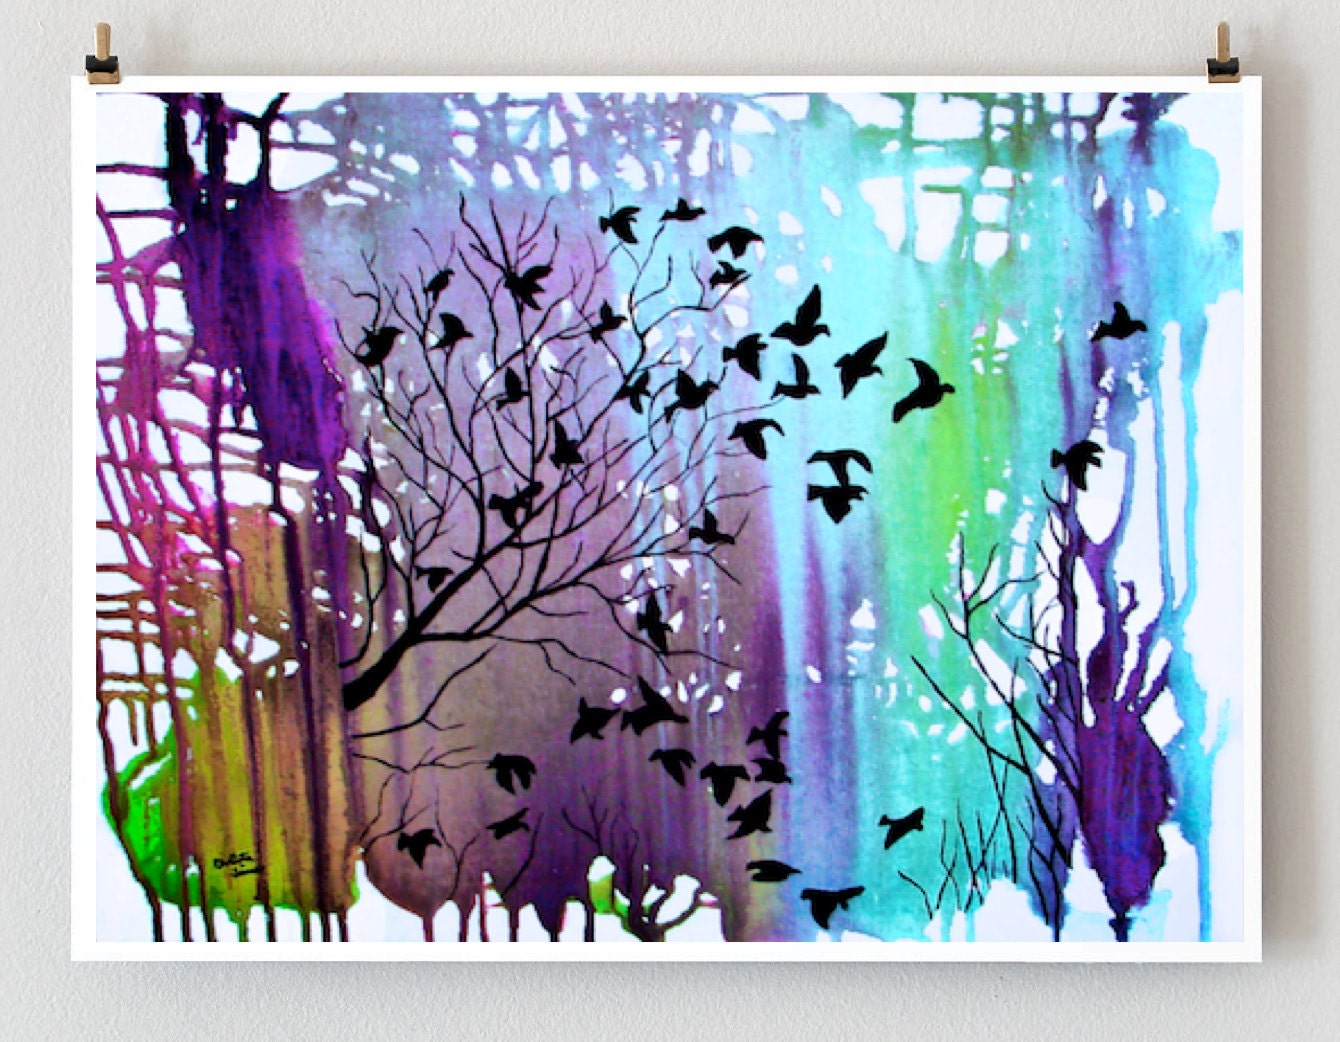 giclee print tree art wall d cor landscape art wall by